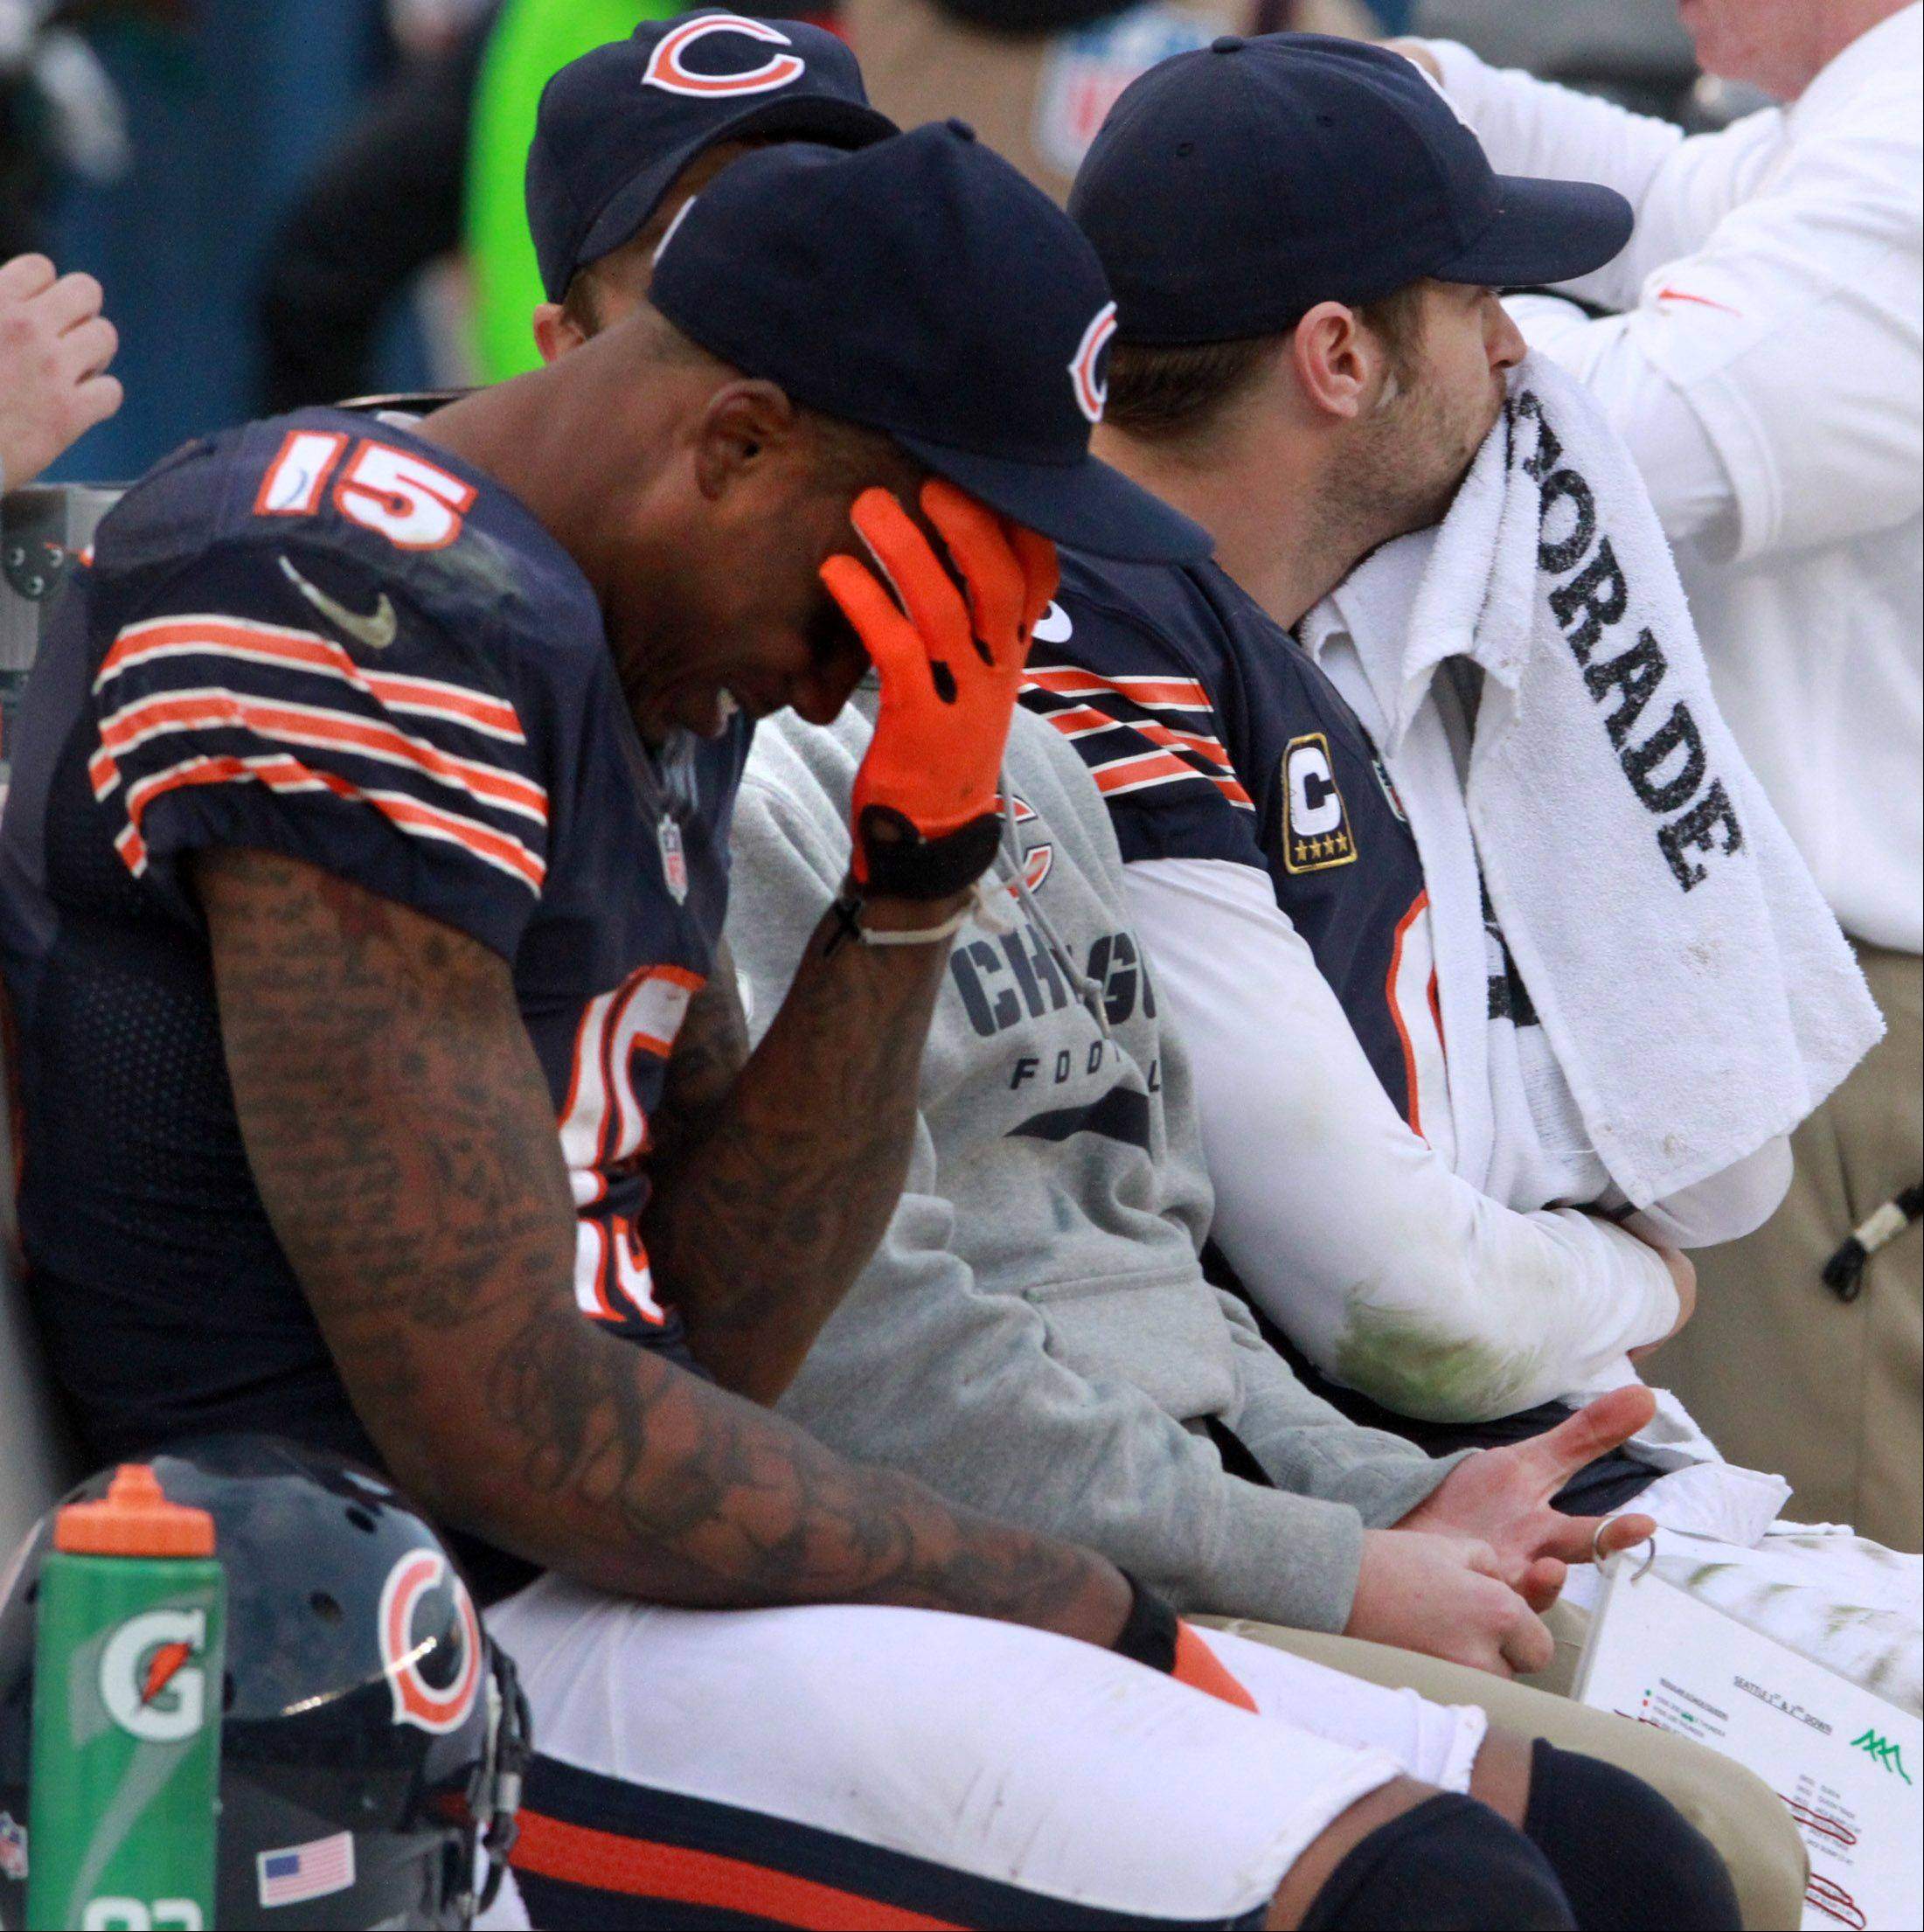 Bears receiver Brandon Marshall and quarterback Jay Cutler react from the bench Sunday as the Seahawks score near the end of regulation at Soldier Field.